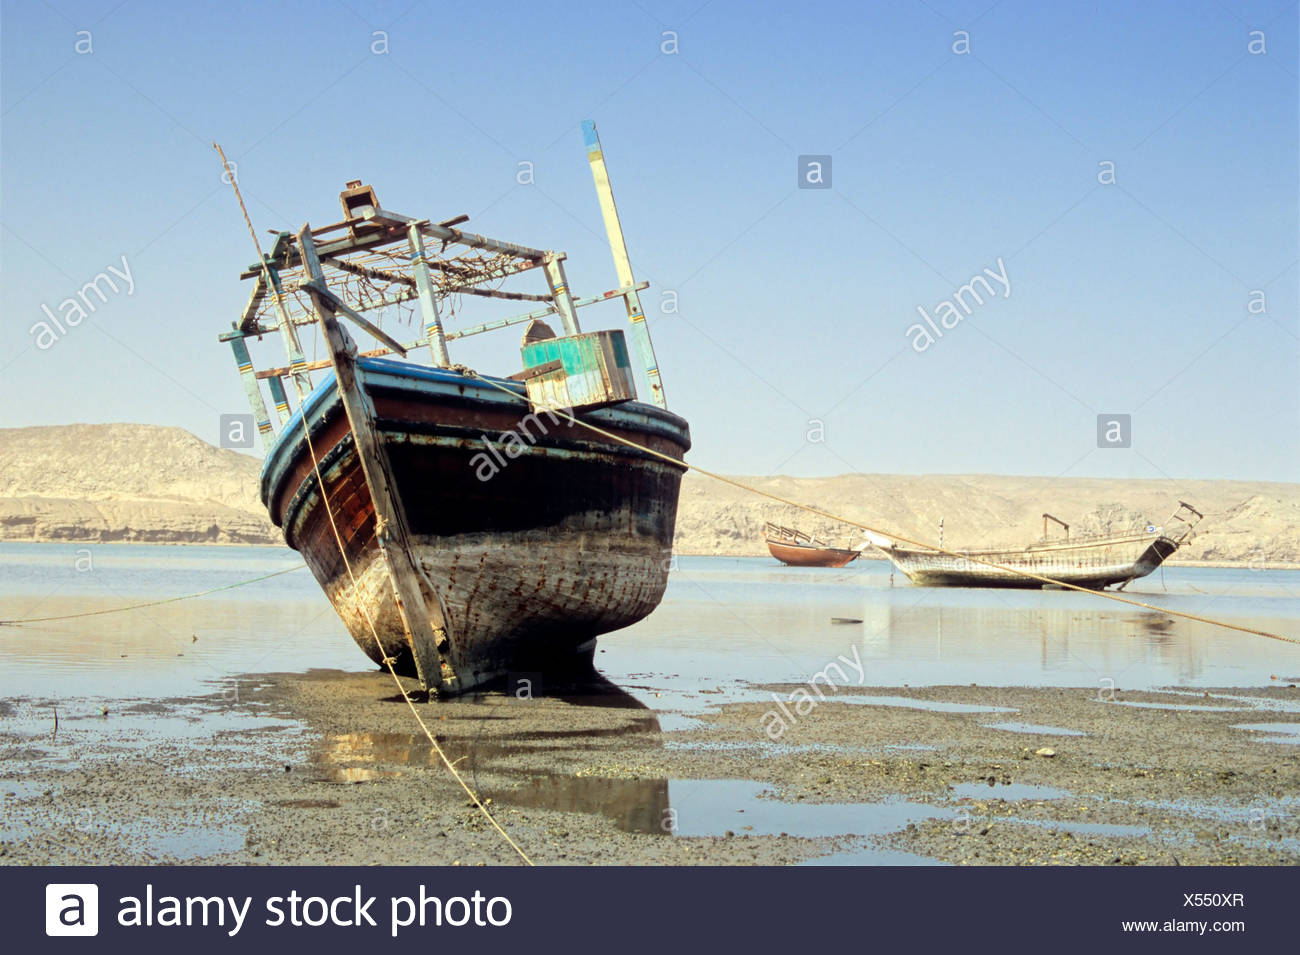 Ship cemetery at Sur, Oman, Arabian Peninsula, Middle East Stock Photo